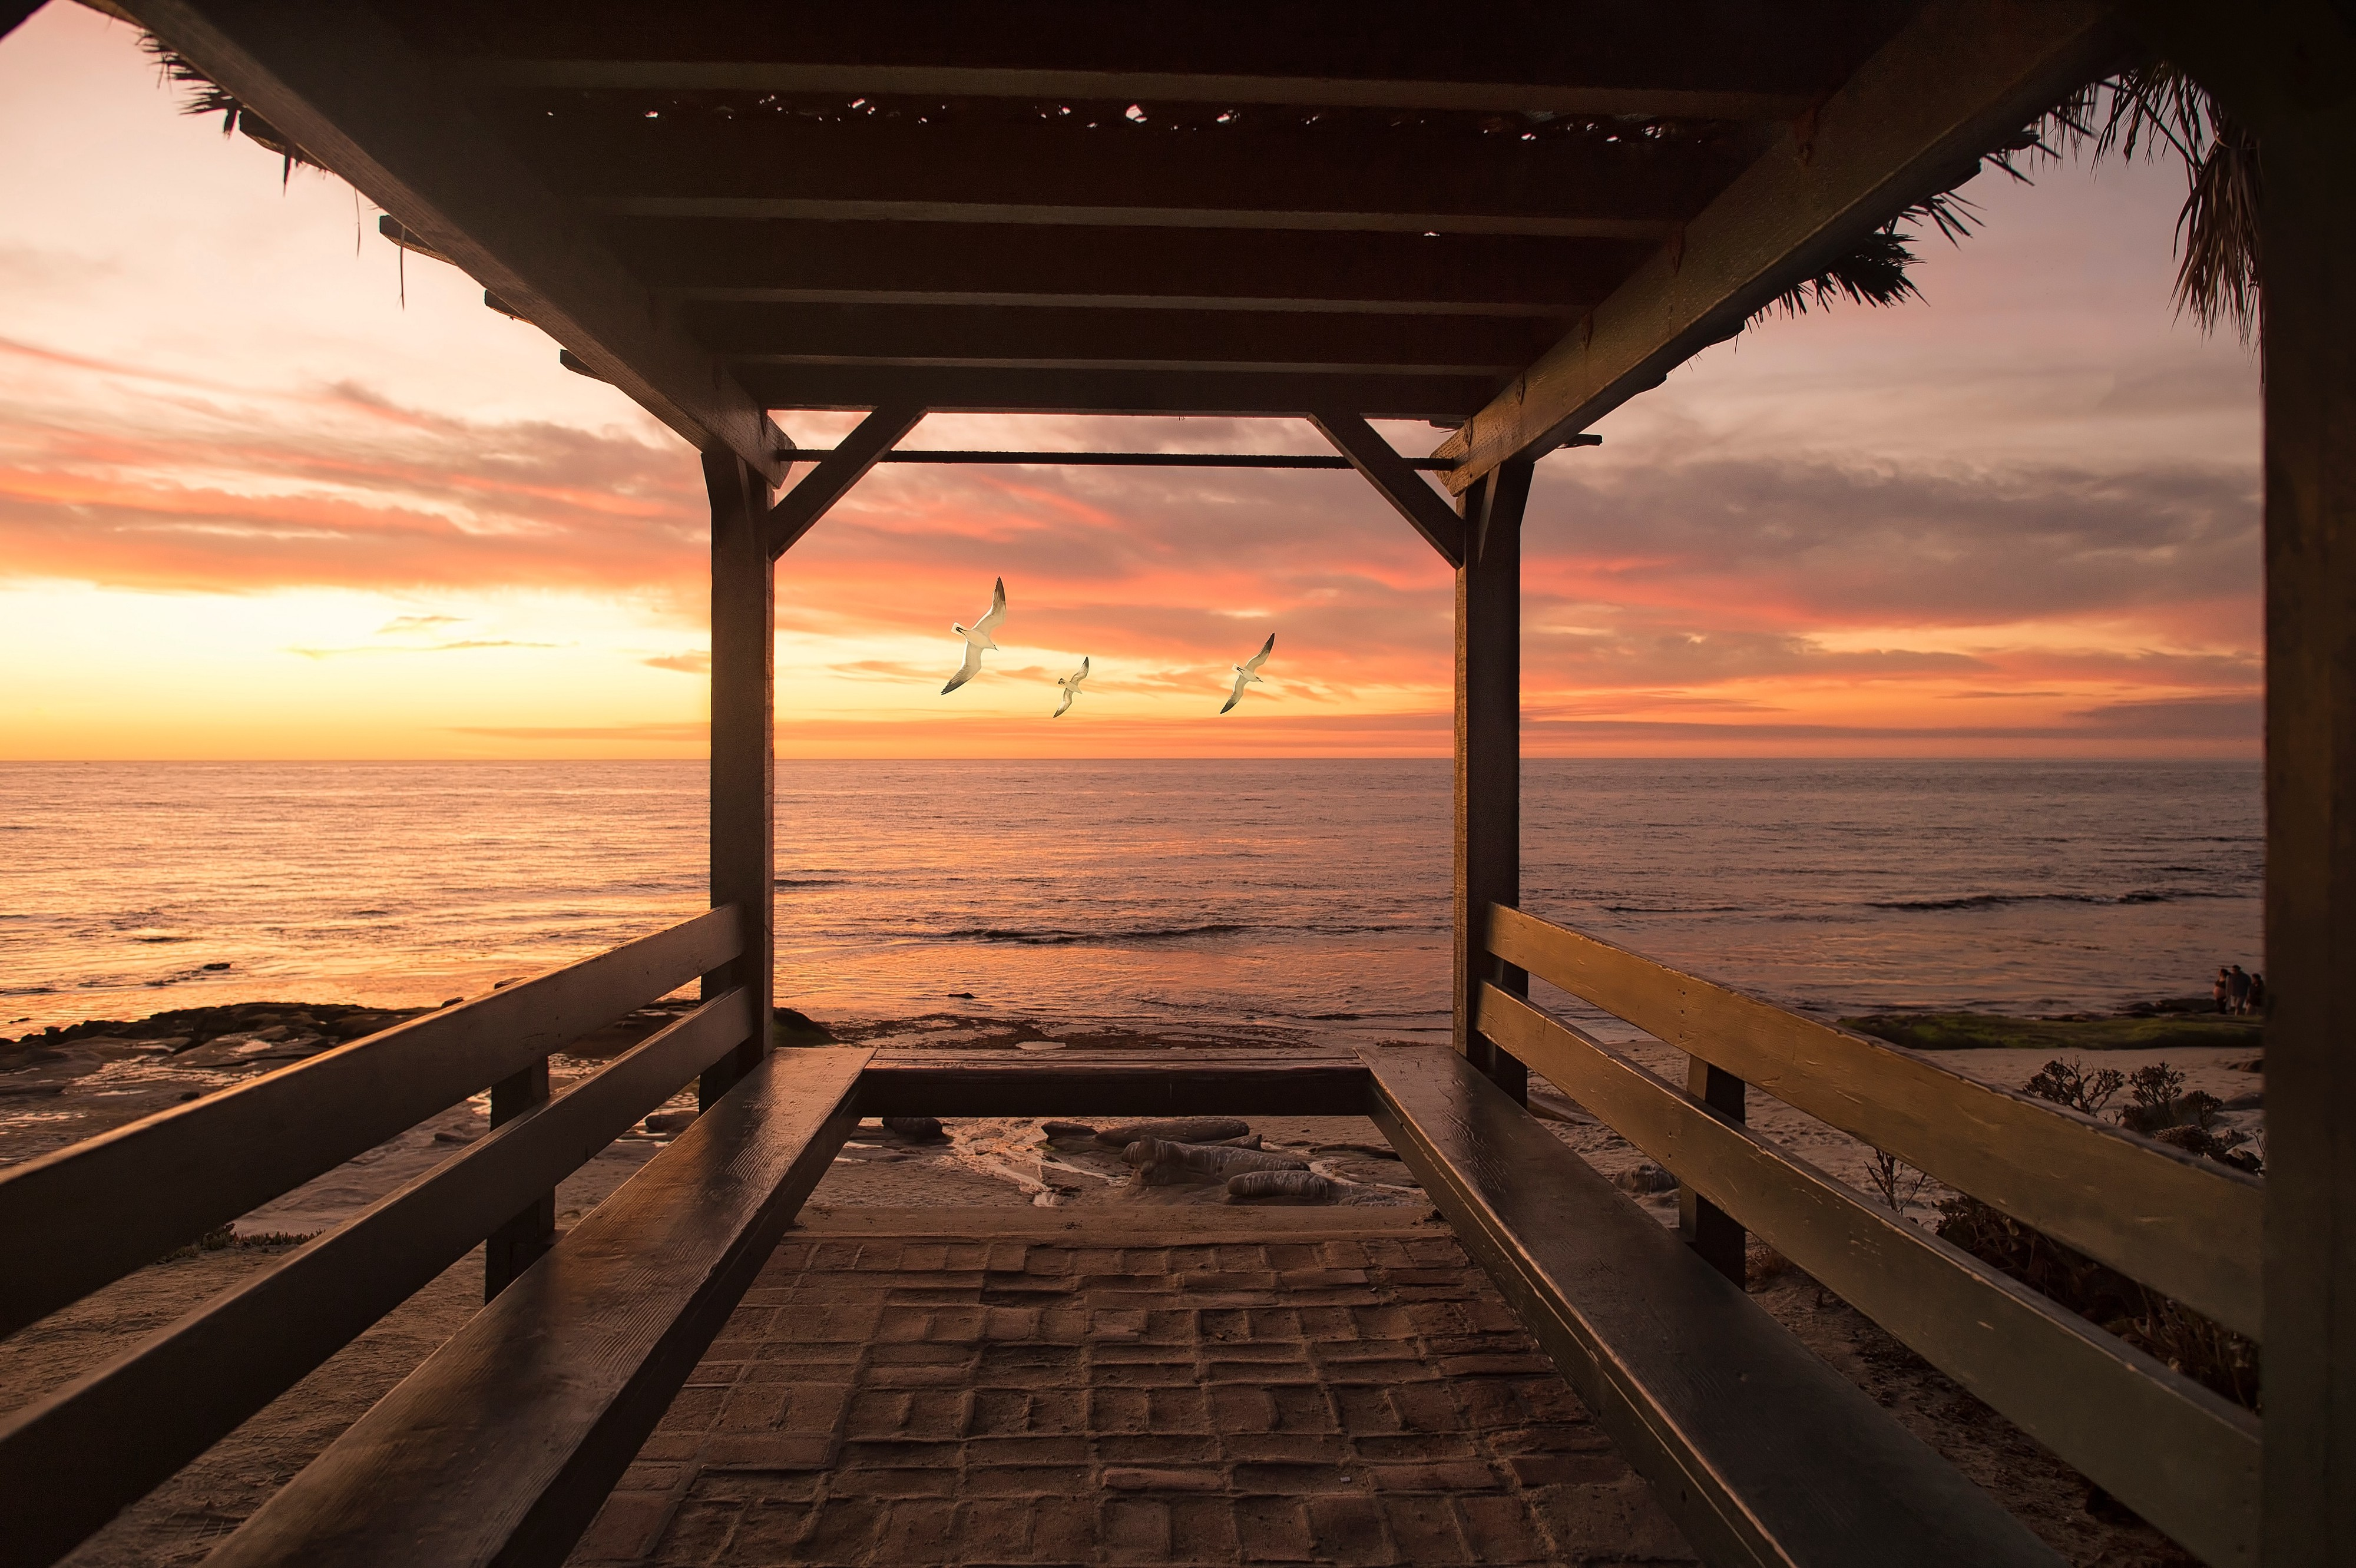 Gazebo bridge view towards a beach with a sunset background and birds flying.